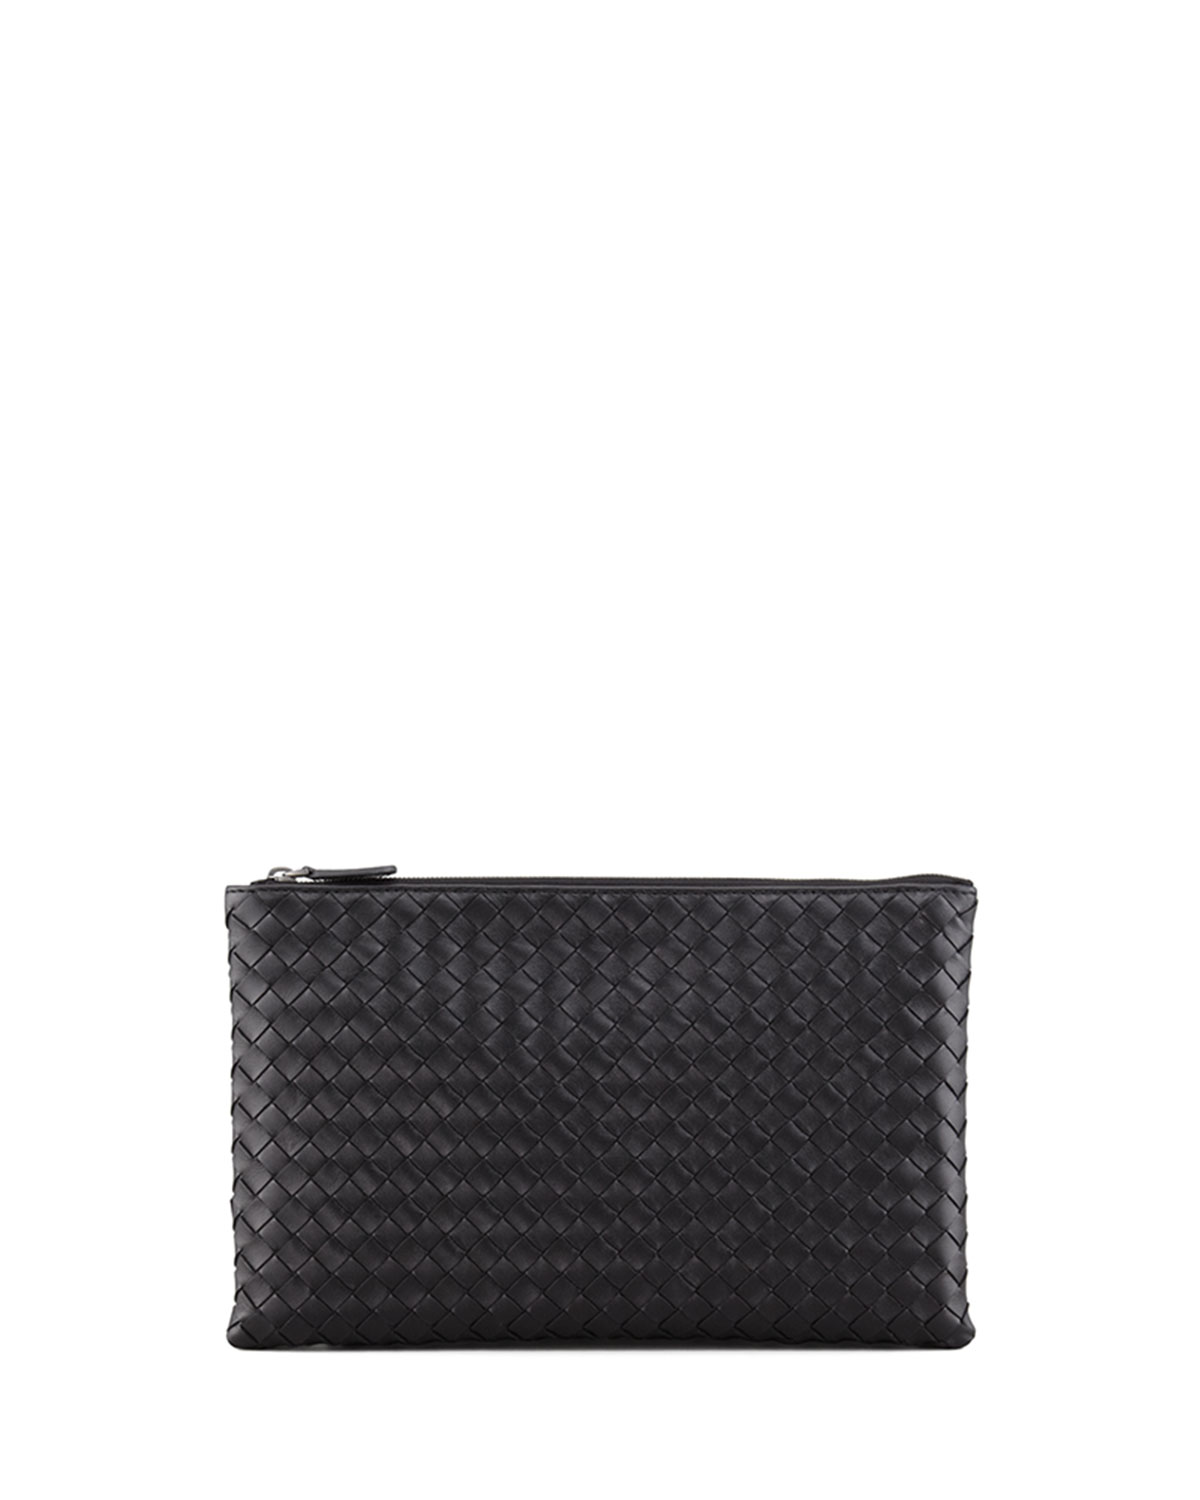 6361a0fd28 Bottega Veneta Extra Large Flat Cosmetics Bag